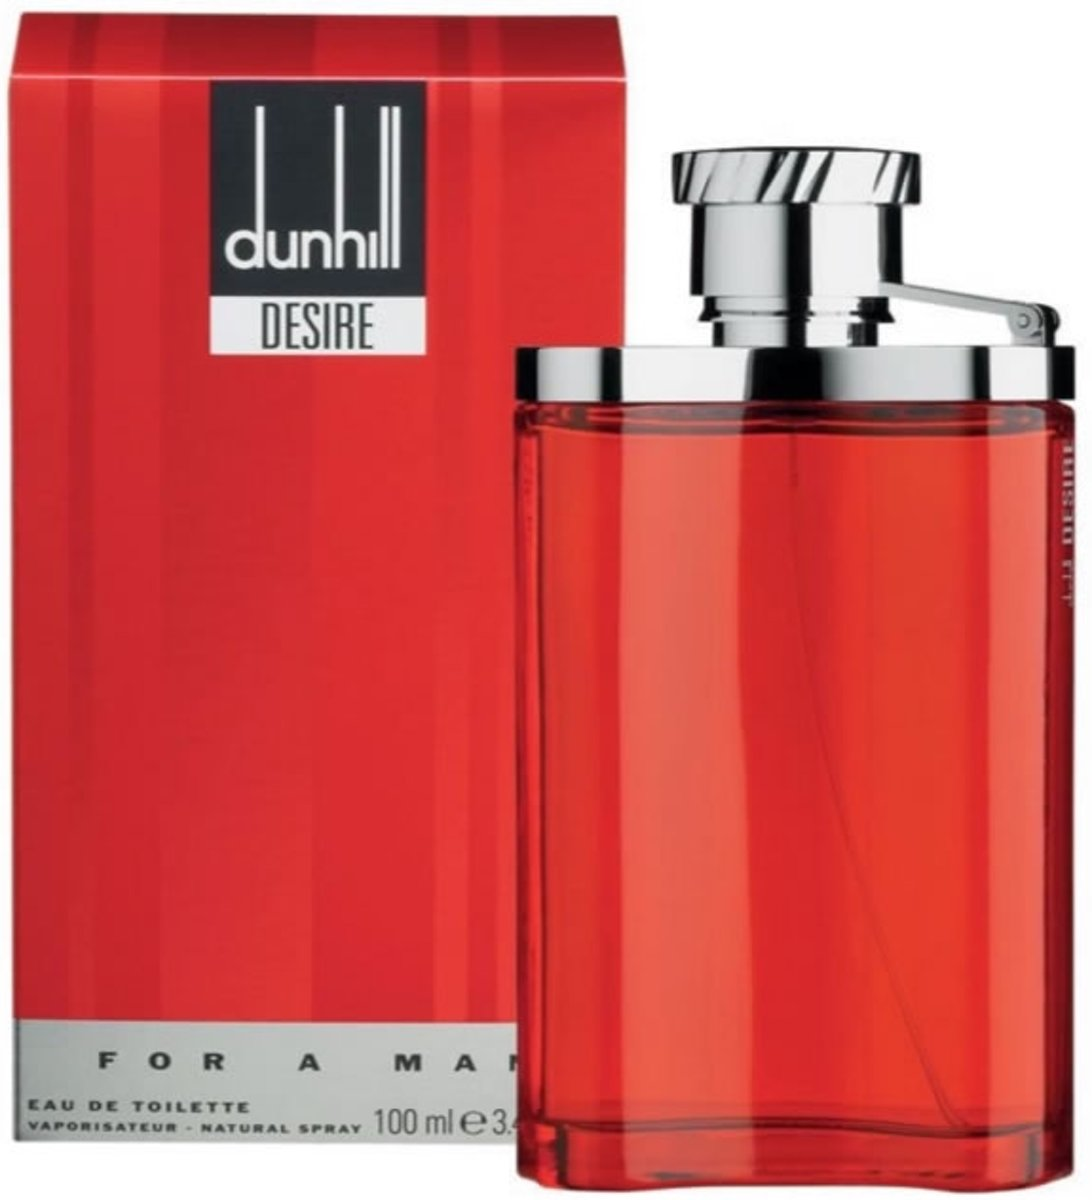 MULTI BUNDEL 4 stuks Dunhill London Desire For A Man Eau De Toilette Spray 100ml